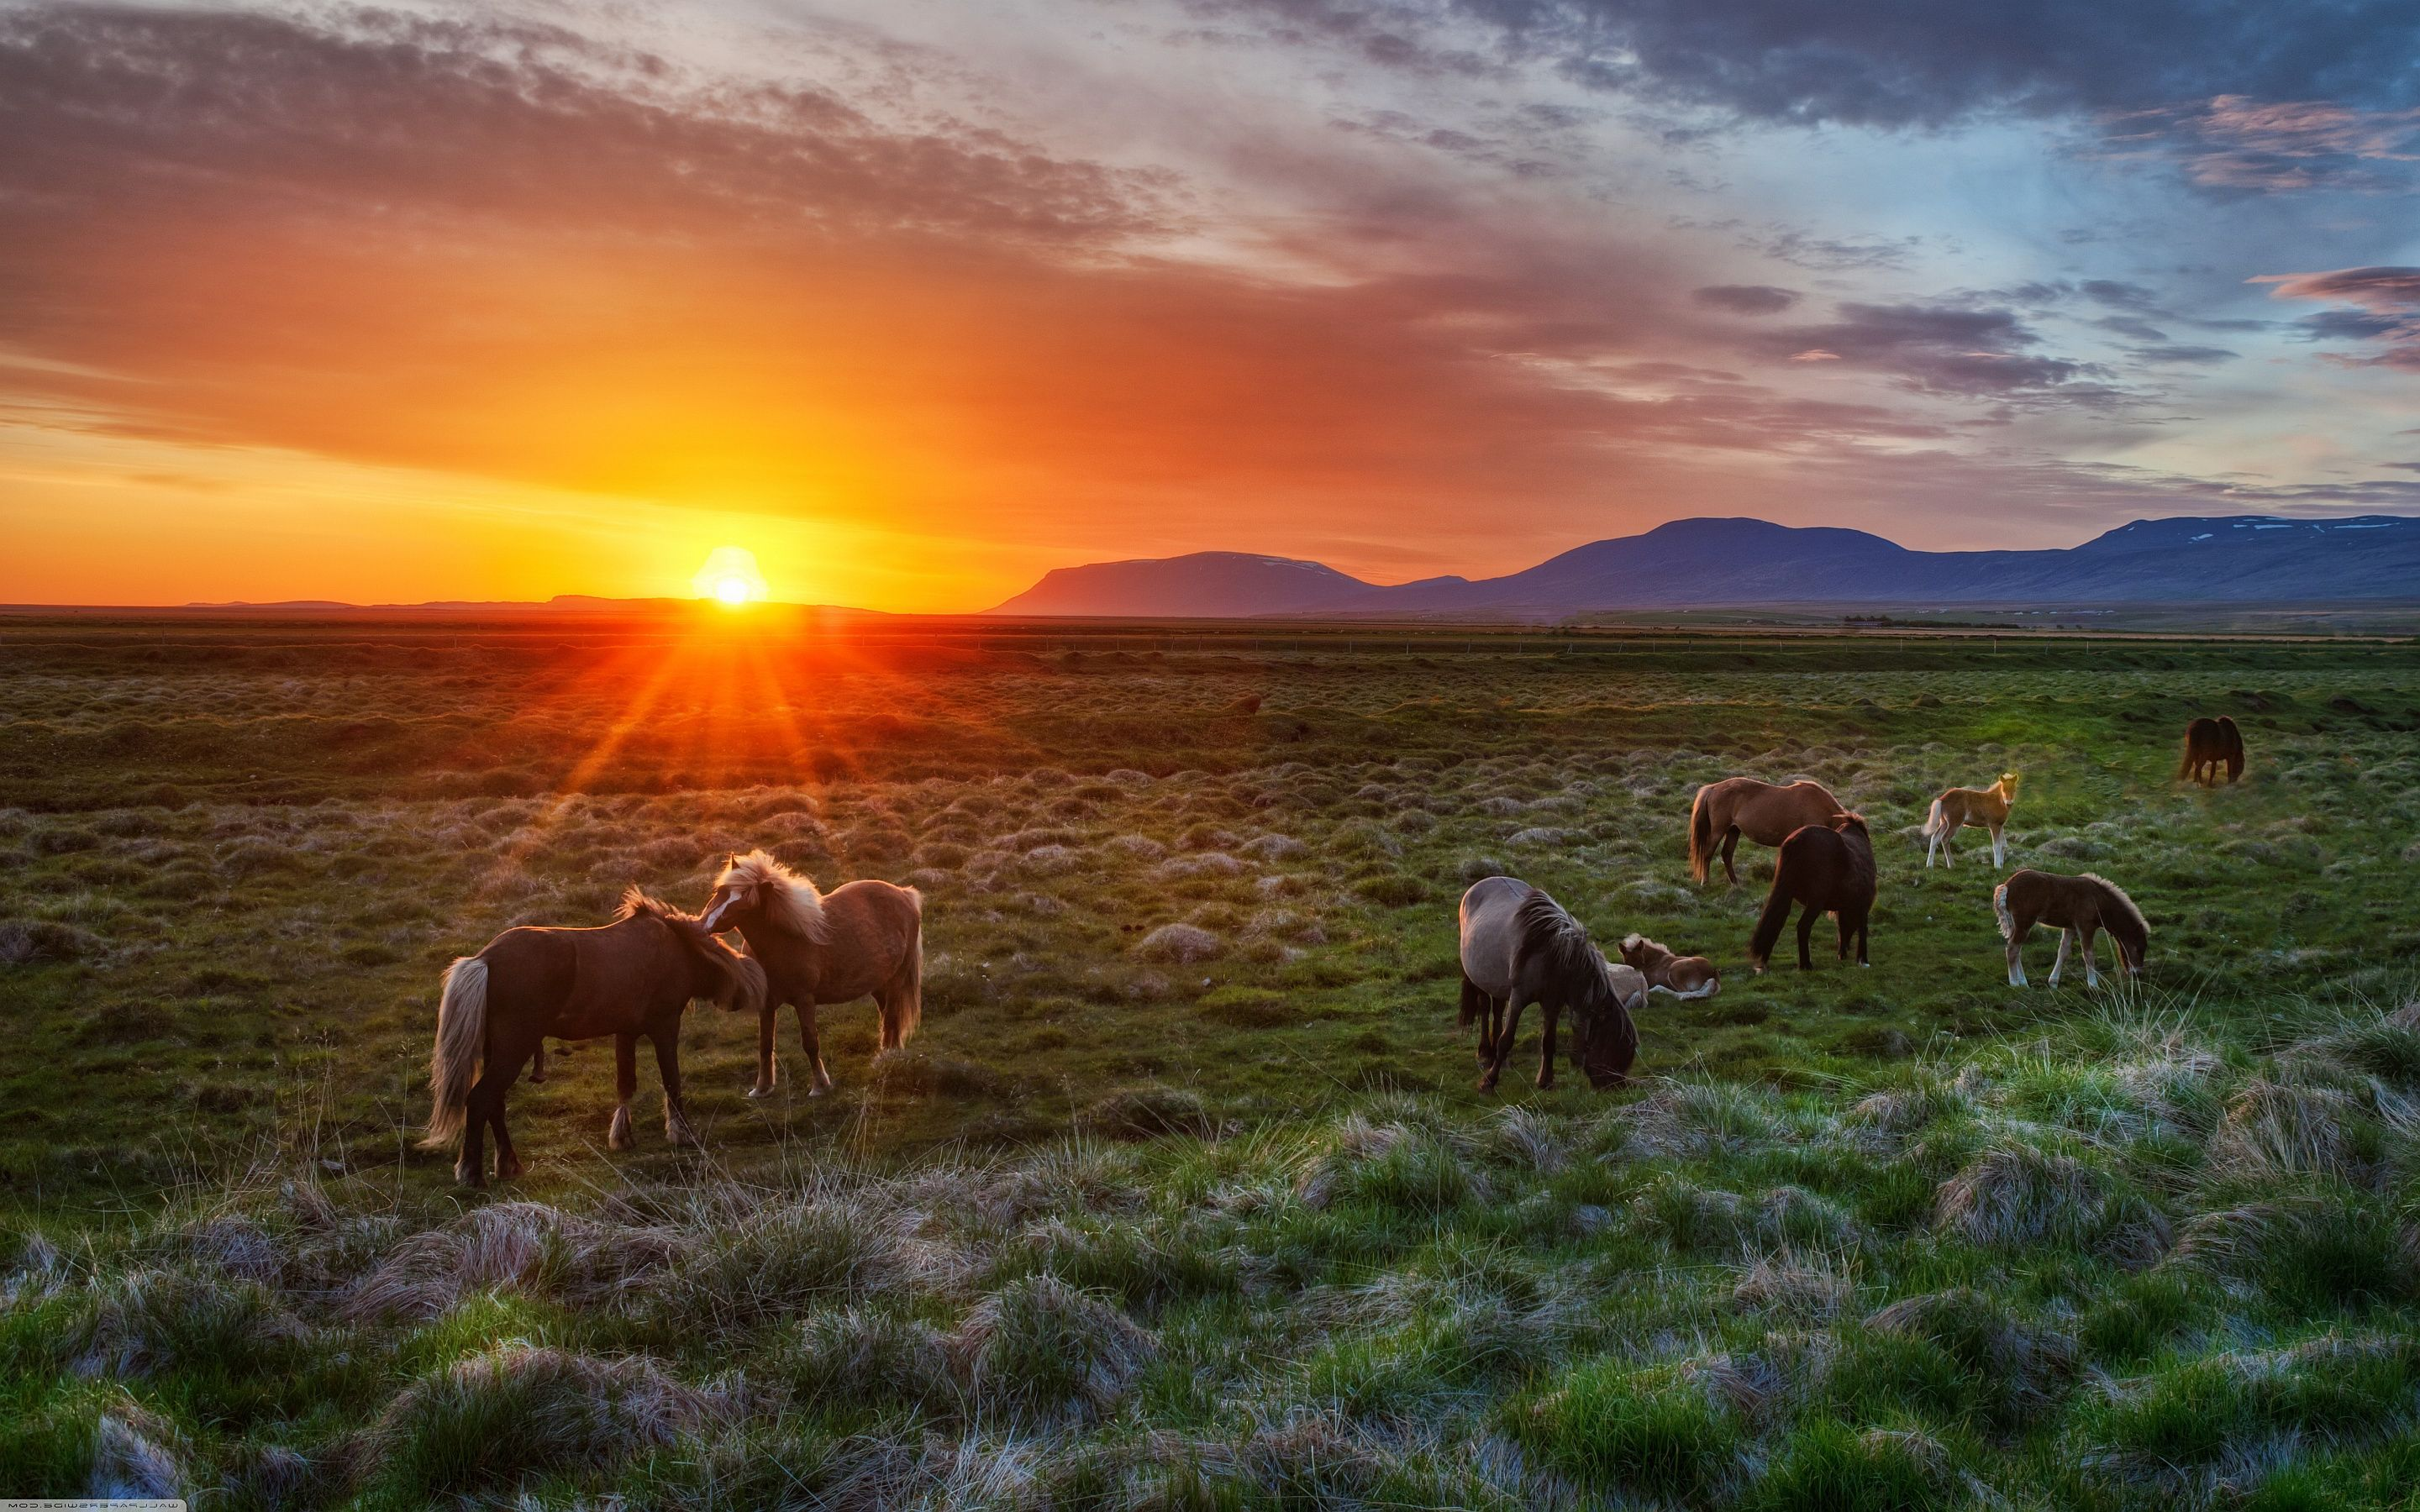 Must see Wallpaper Horse Landscape - 77564066747794fc88184b7cd99eccf9  You Should Have_366320.jpg